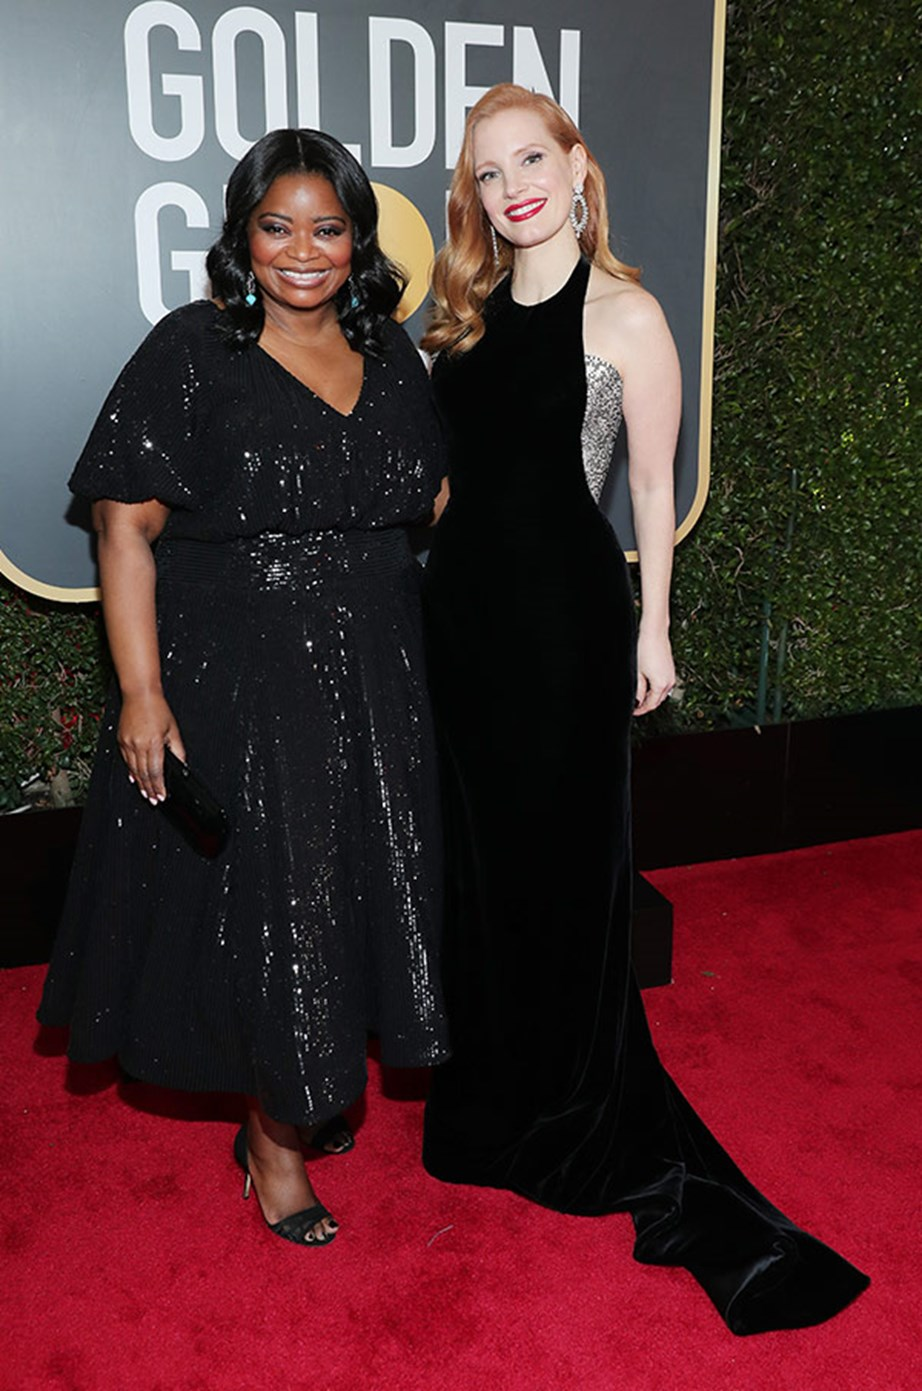 Pals **Octavia Spencer** and **Jessica Chastain** have been active supporters of the Time's Up movement from the start.